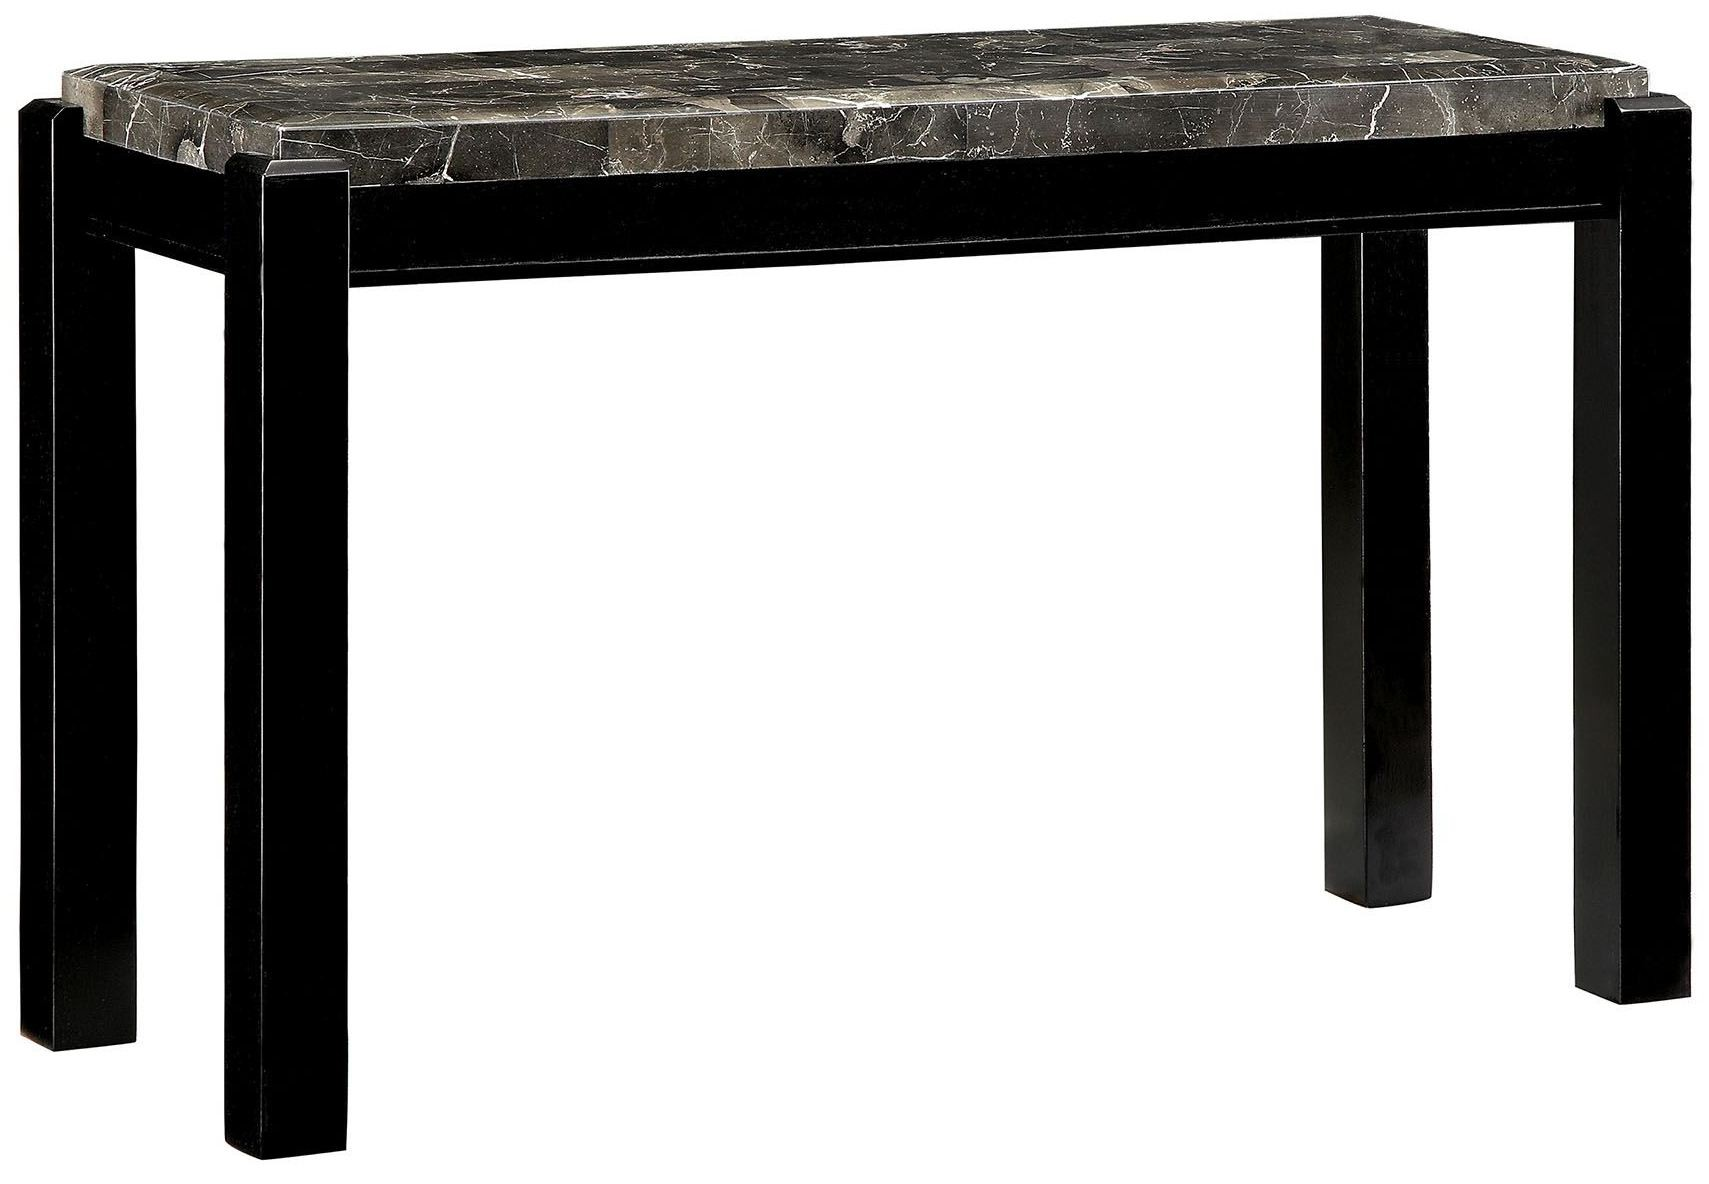 Gladstone Gray Marble Top Sofa Table CM4823BK S